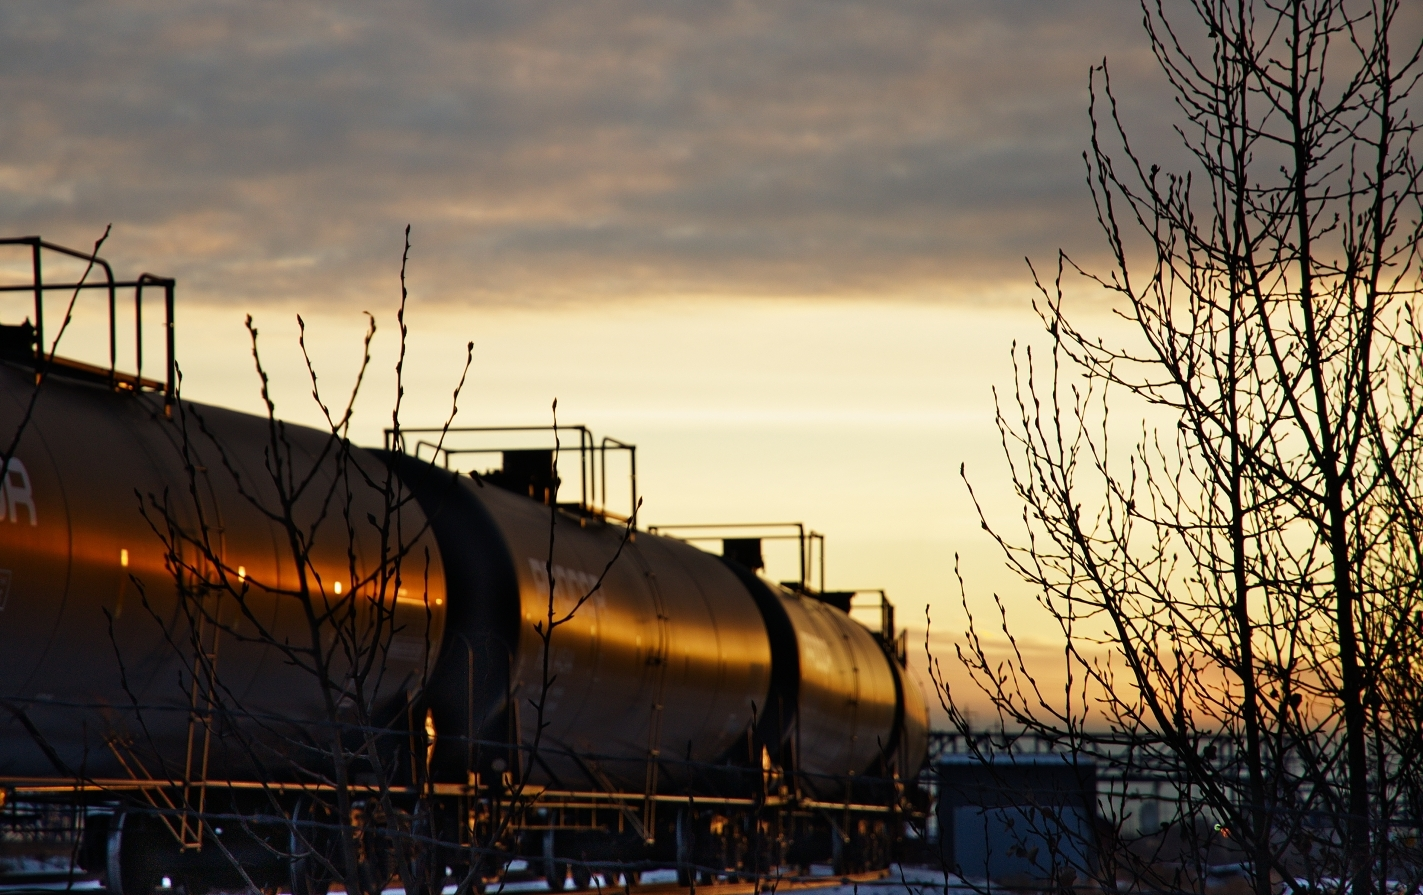 Unsafe Crude Oil Tanker Cars Still Riding the Rails Even After Two Derailments